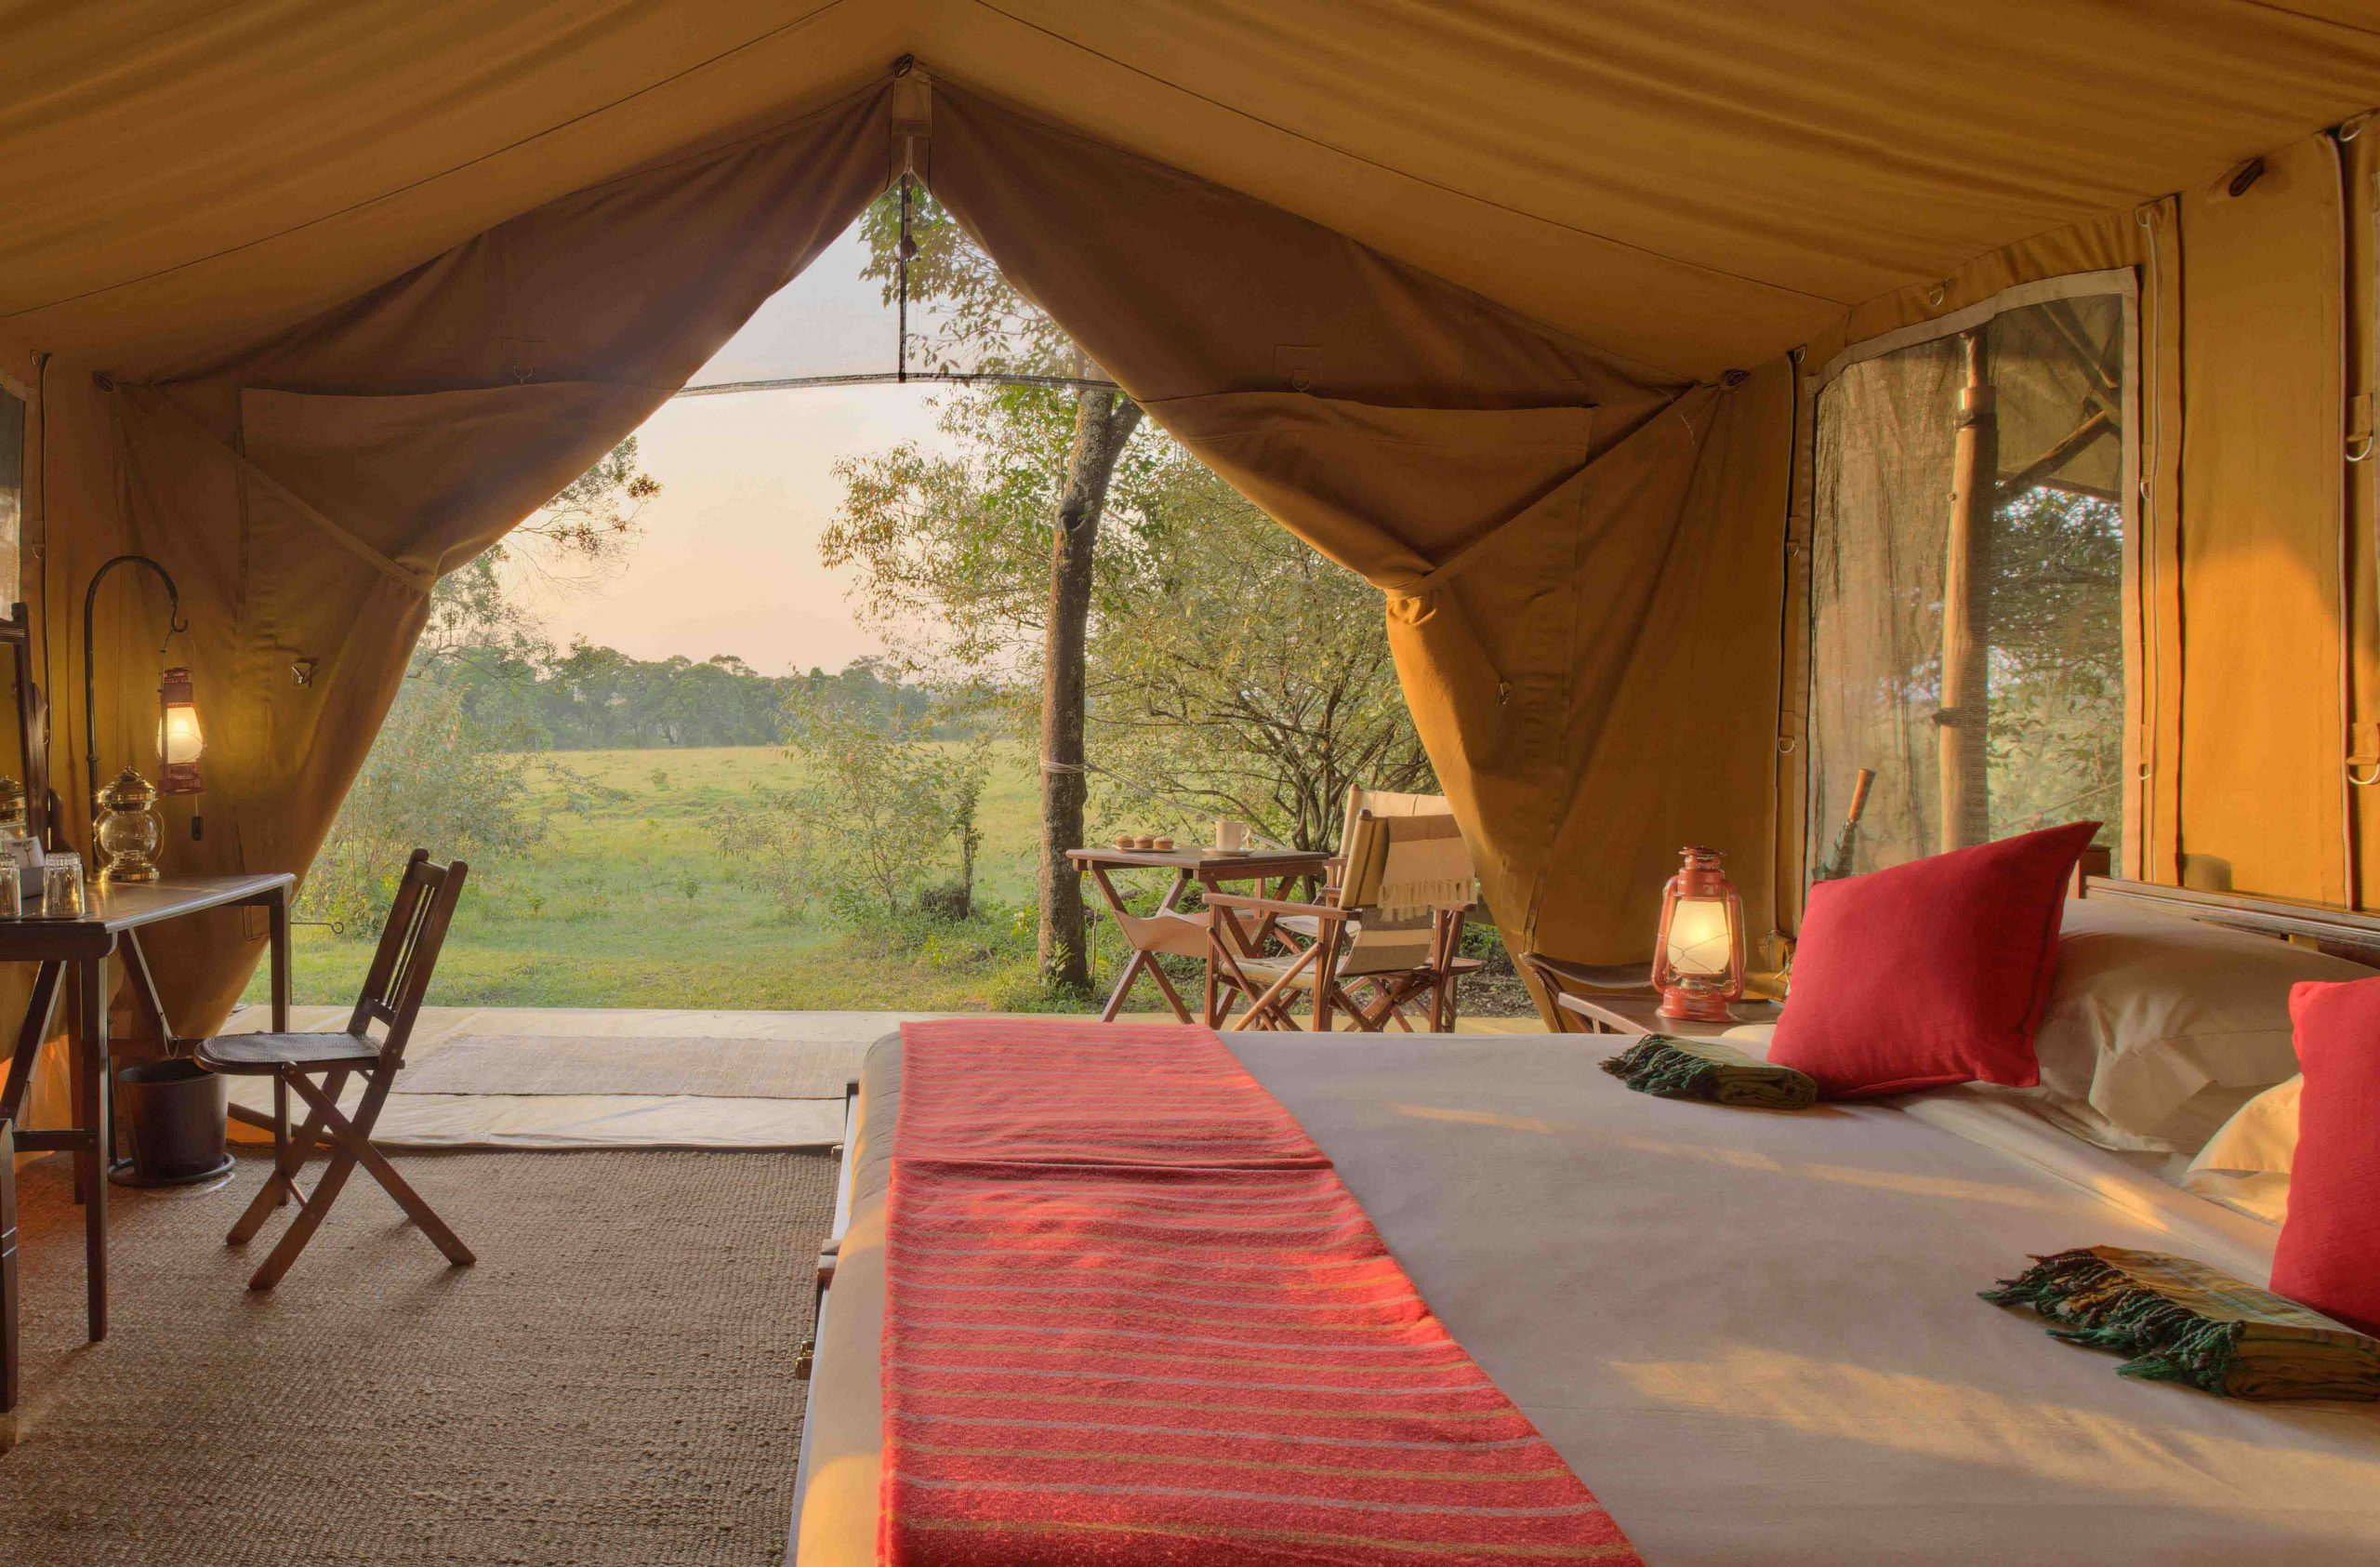 Elephant Pepper camp Masai Wildlife Kenya Fly-In Safari Masai Mara Kenya Africa African Travel Specialists